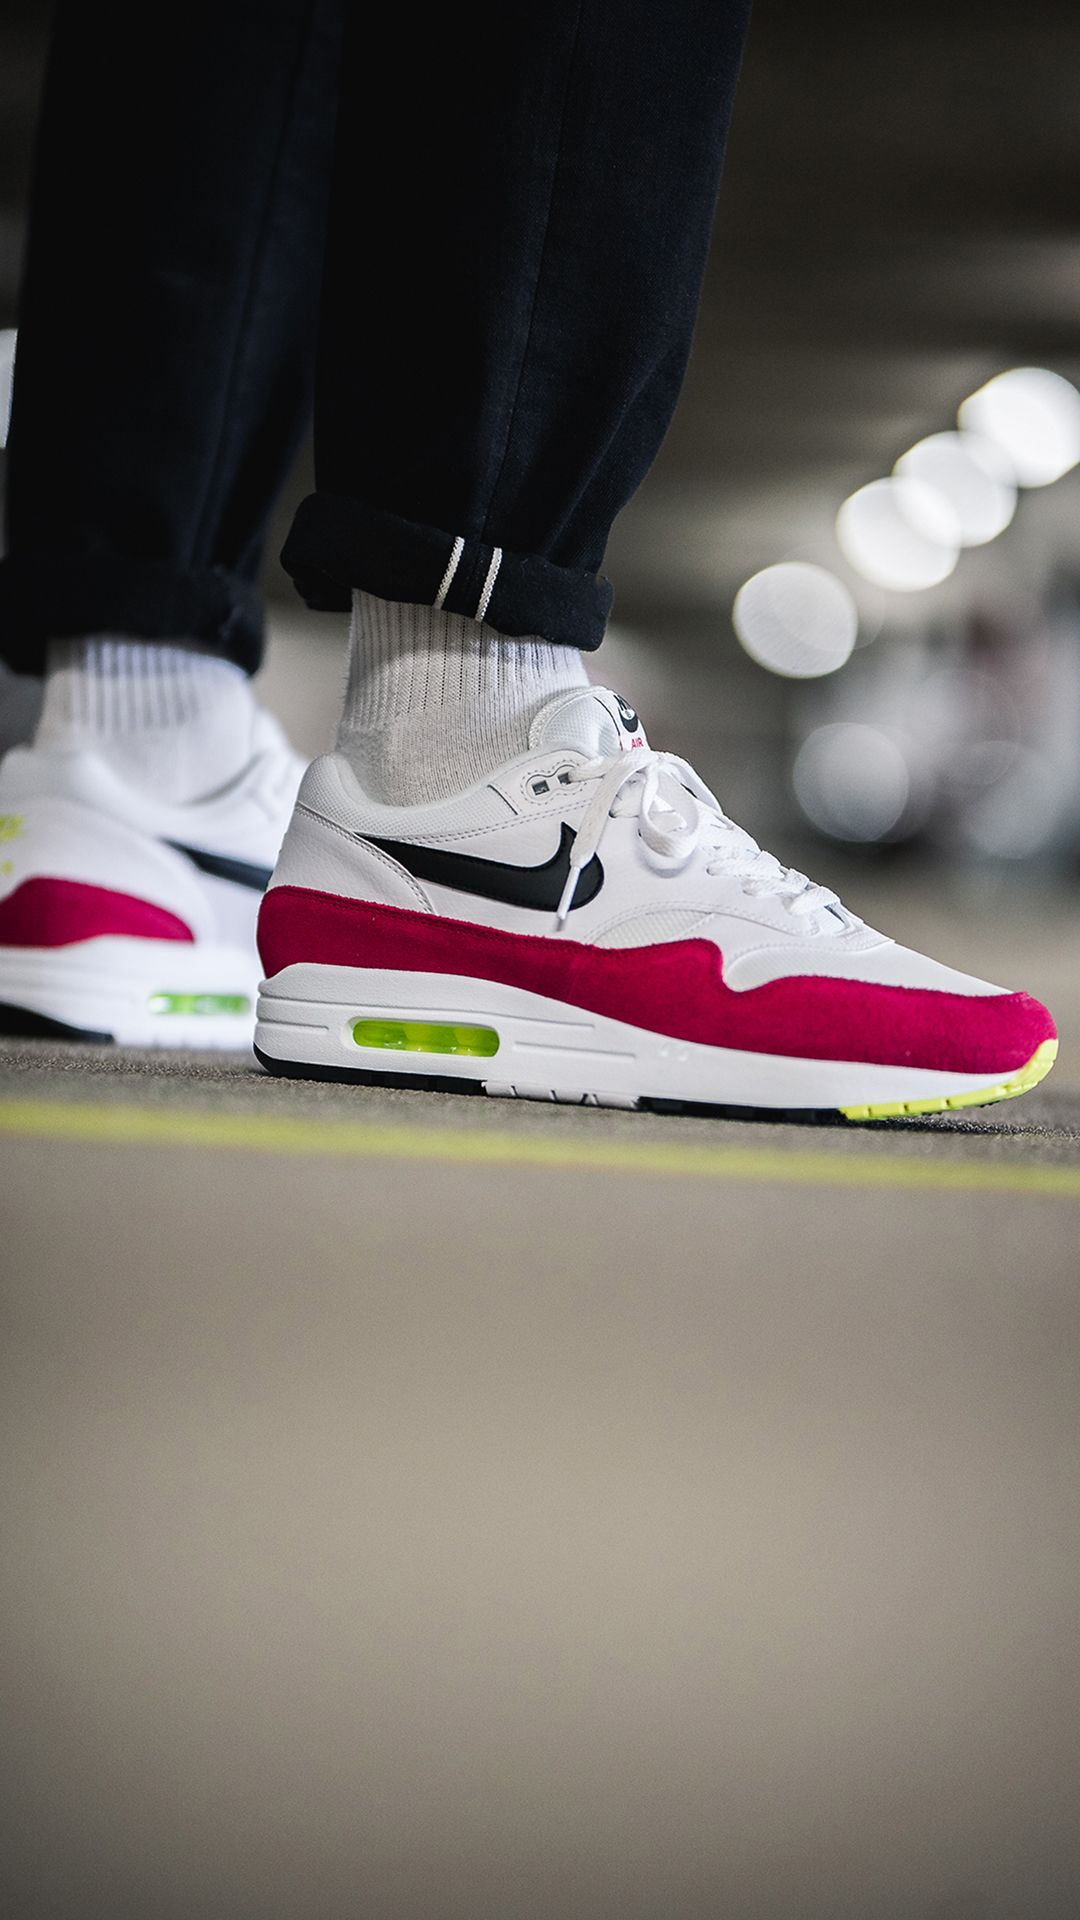 new concept 2335a 0d331 The Nike Air Max 1 was the first sneaker with the legendary Nike Air  technology in Nike s assortment that saw the light of day. Throughout the  years the Air ...